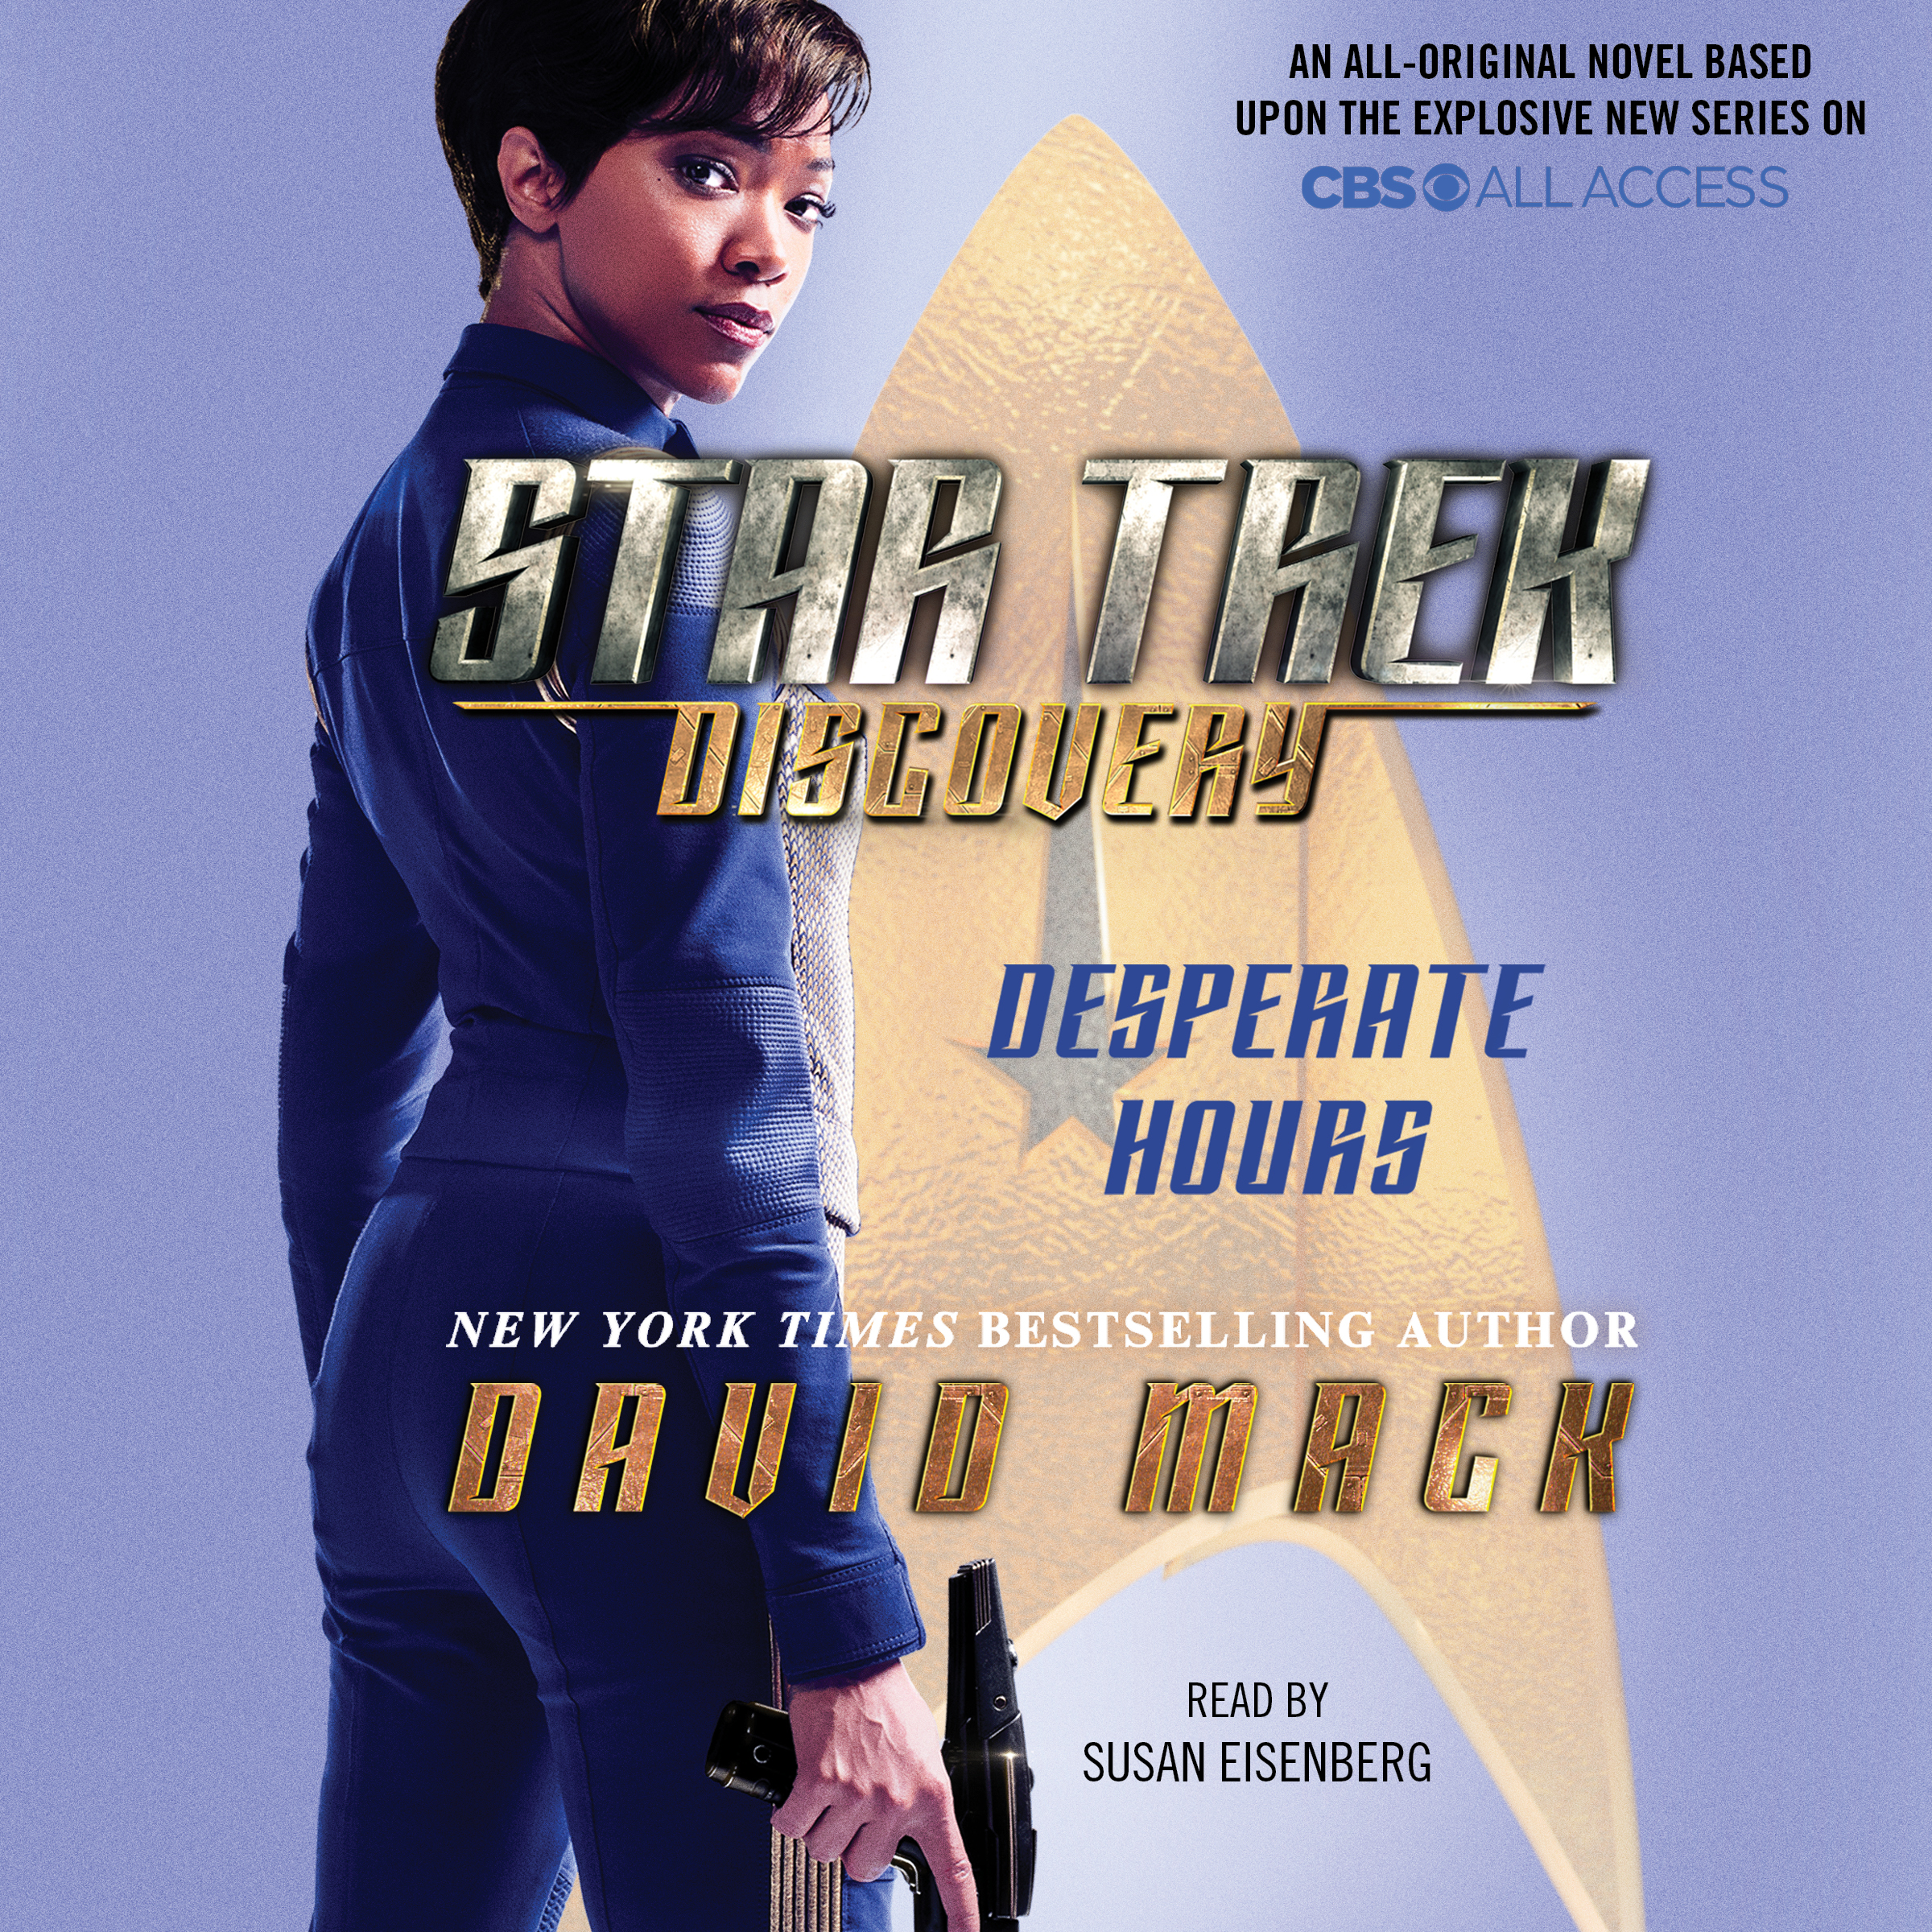 Star trek discovery desperate hours 9781508237952 hr